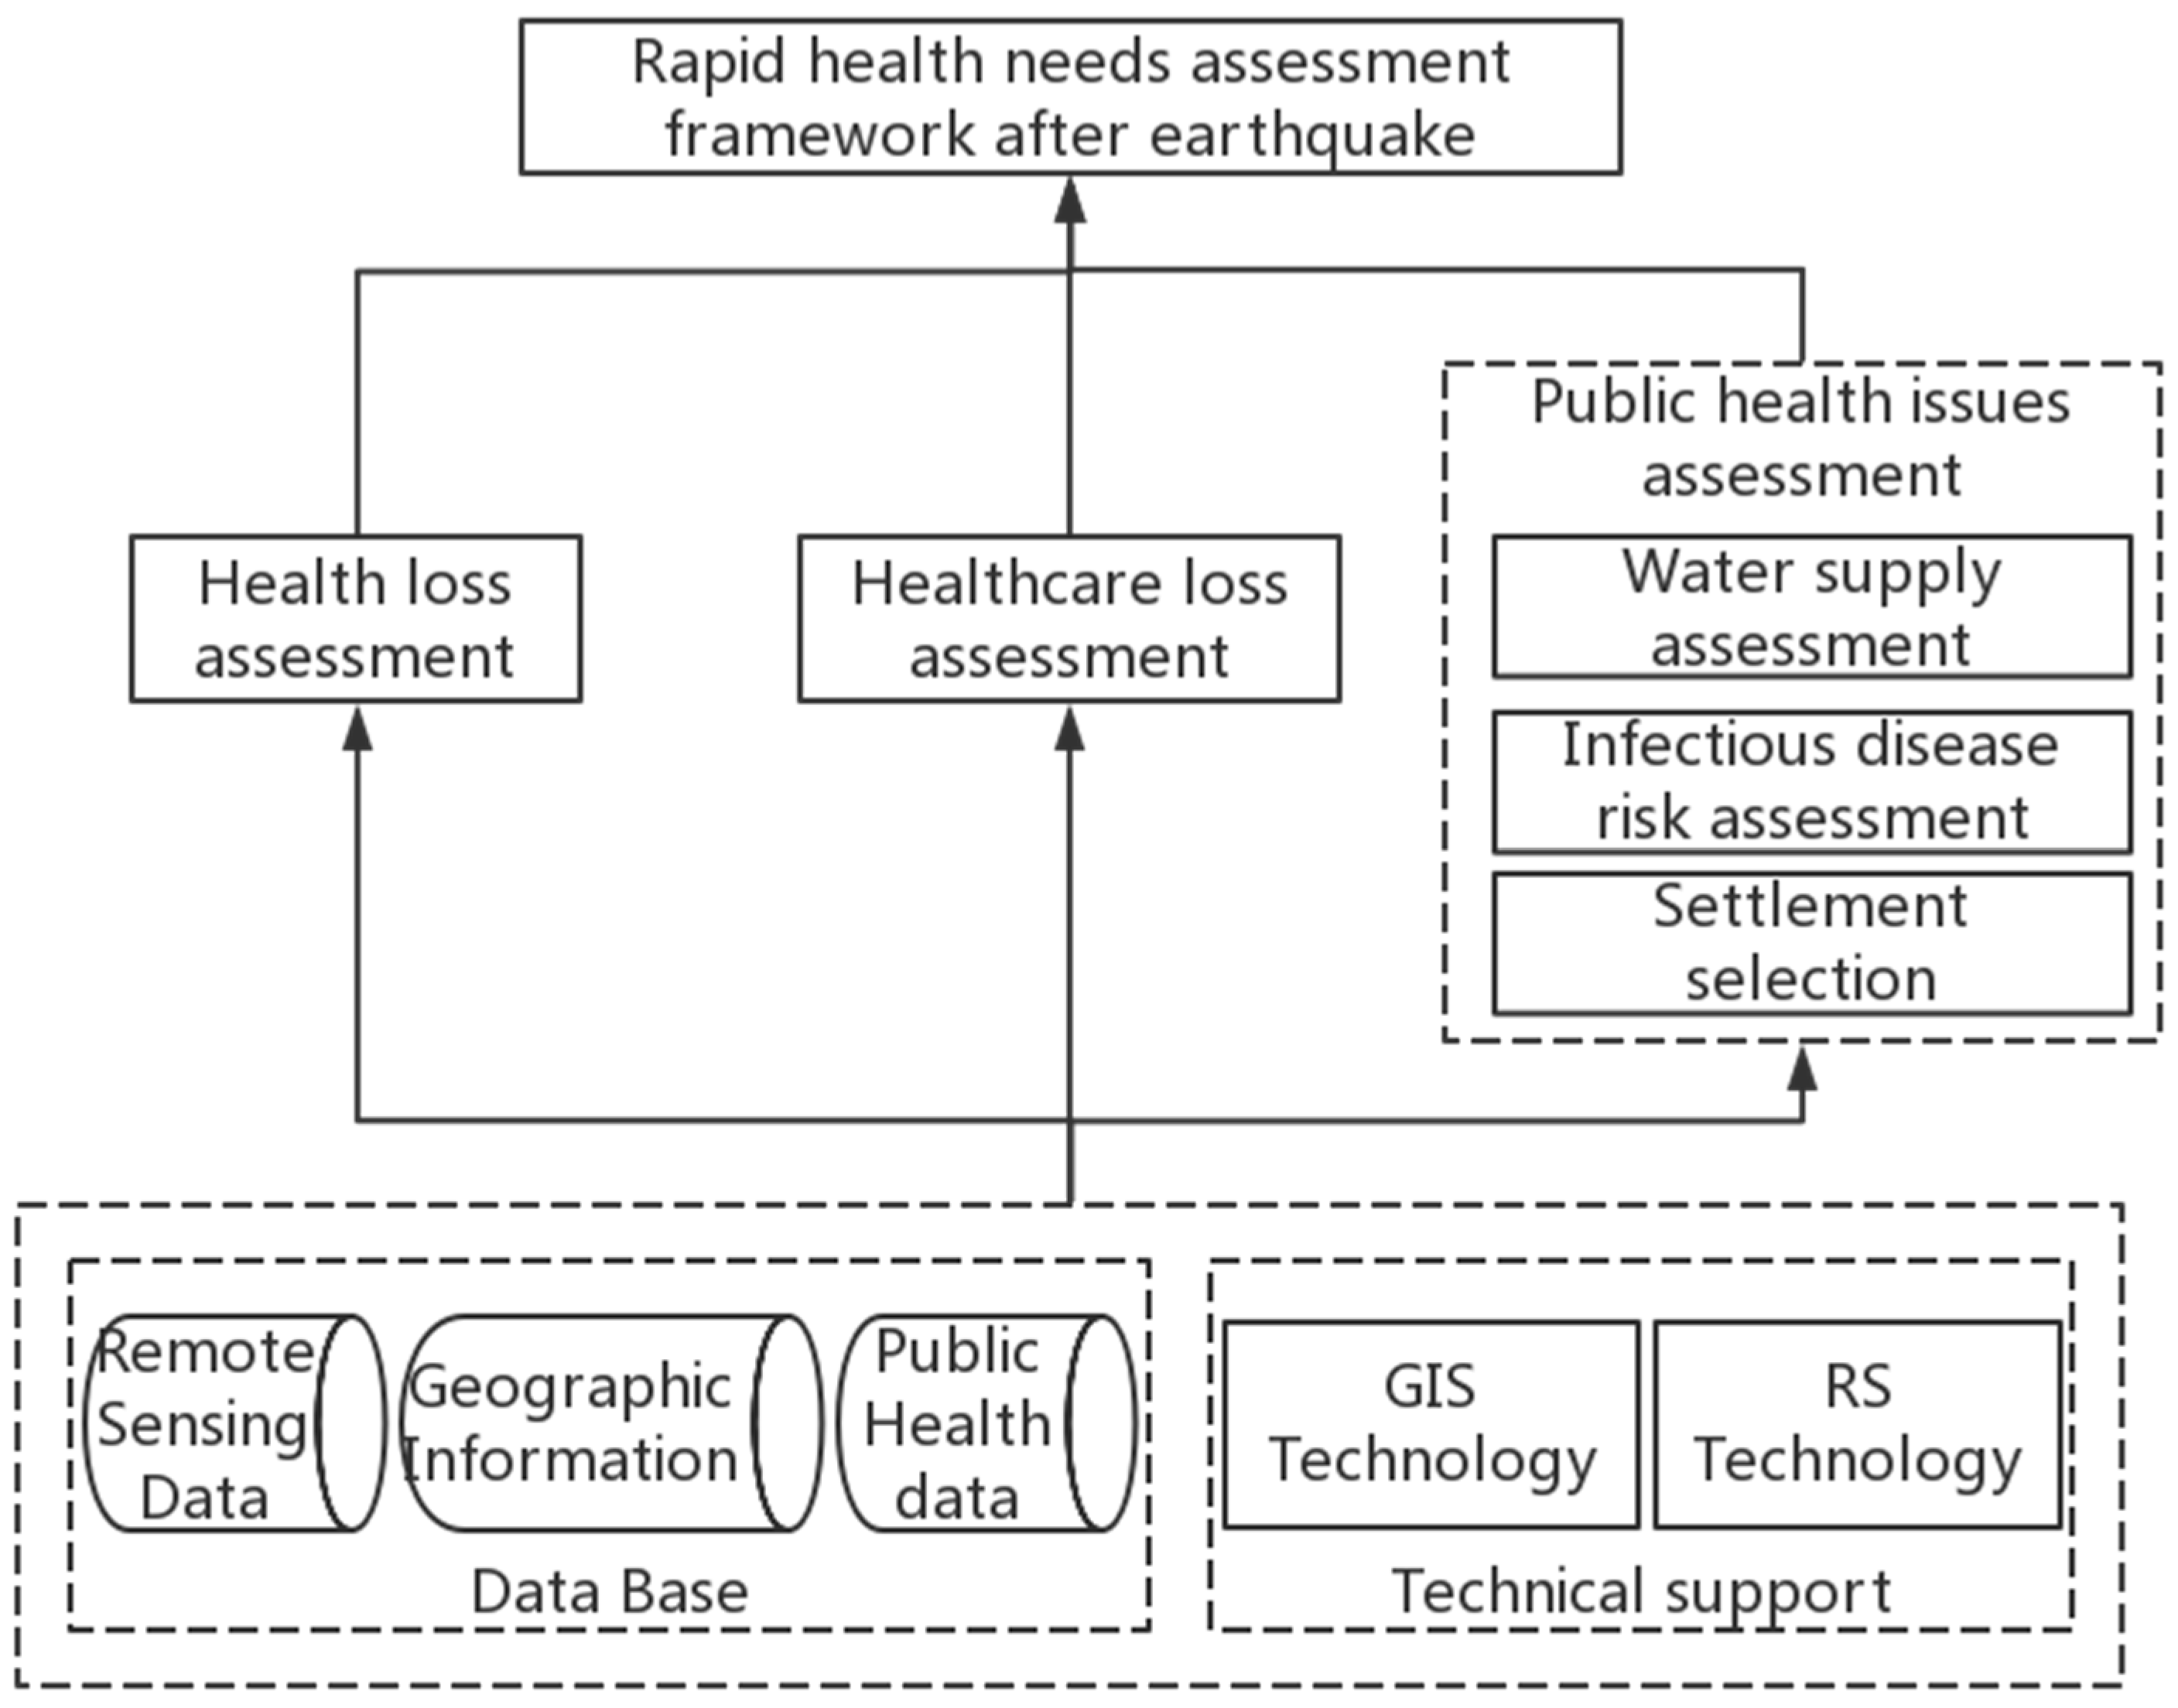 IJERPH | Free Full-Text | A Rapid Public Health Needs